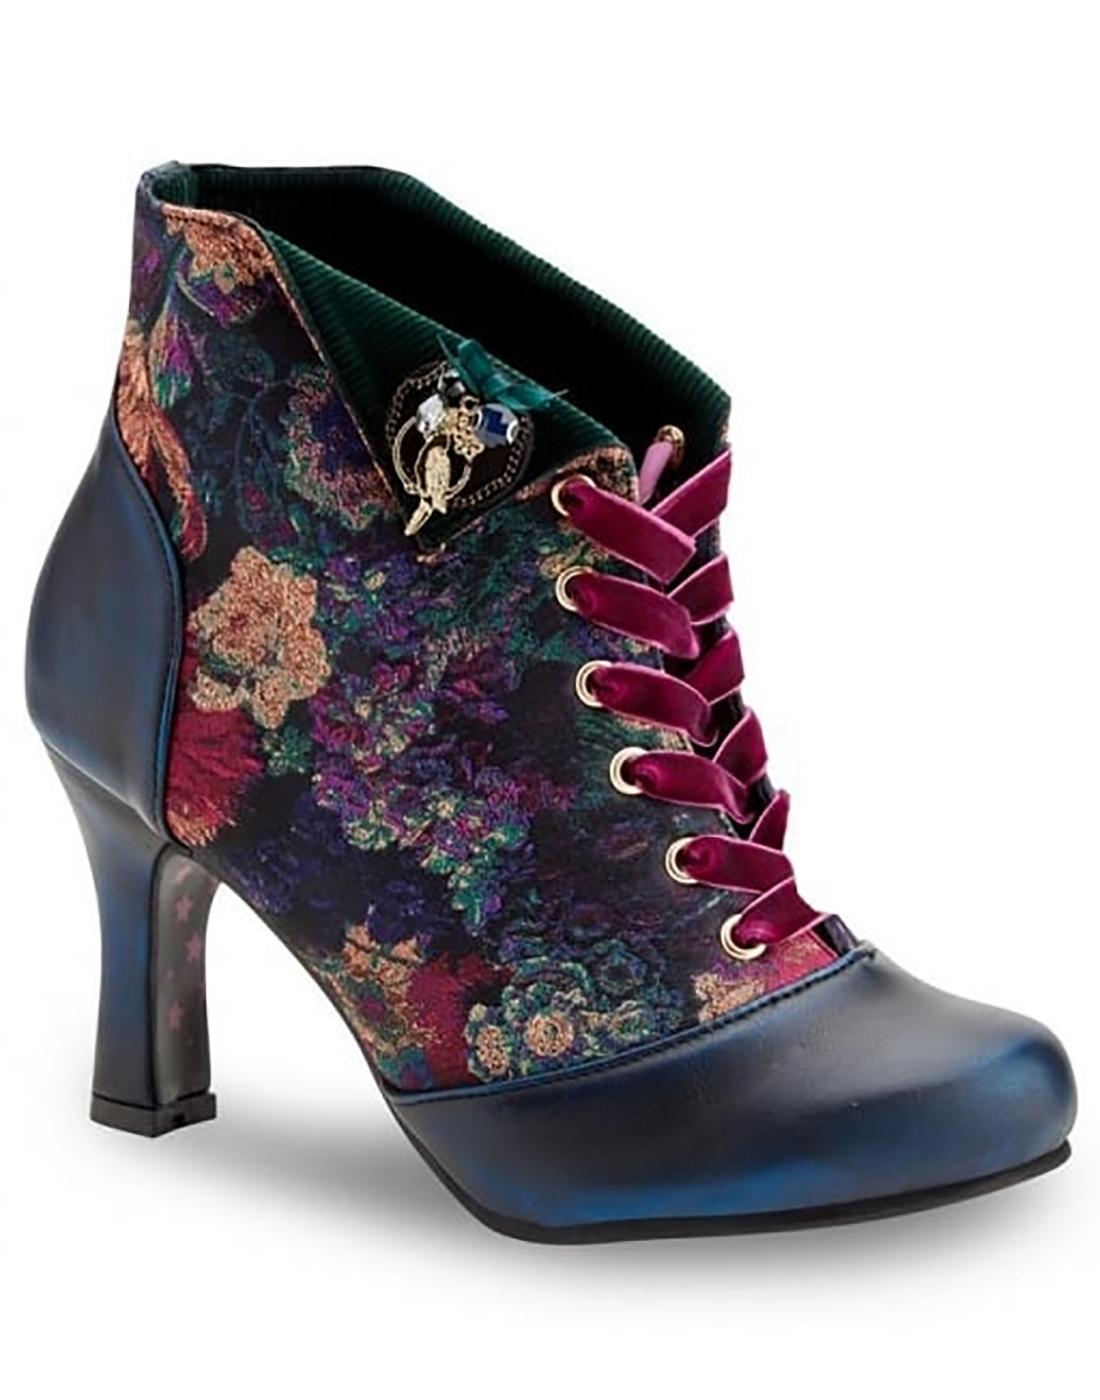 Raven JOE BROWNS Vintage Floral Heeled Boots Blue